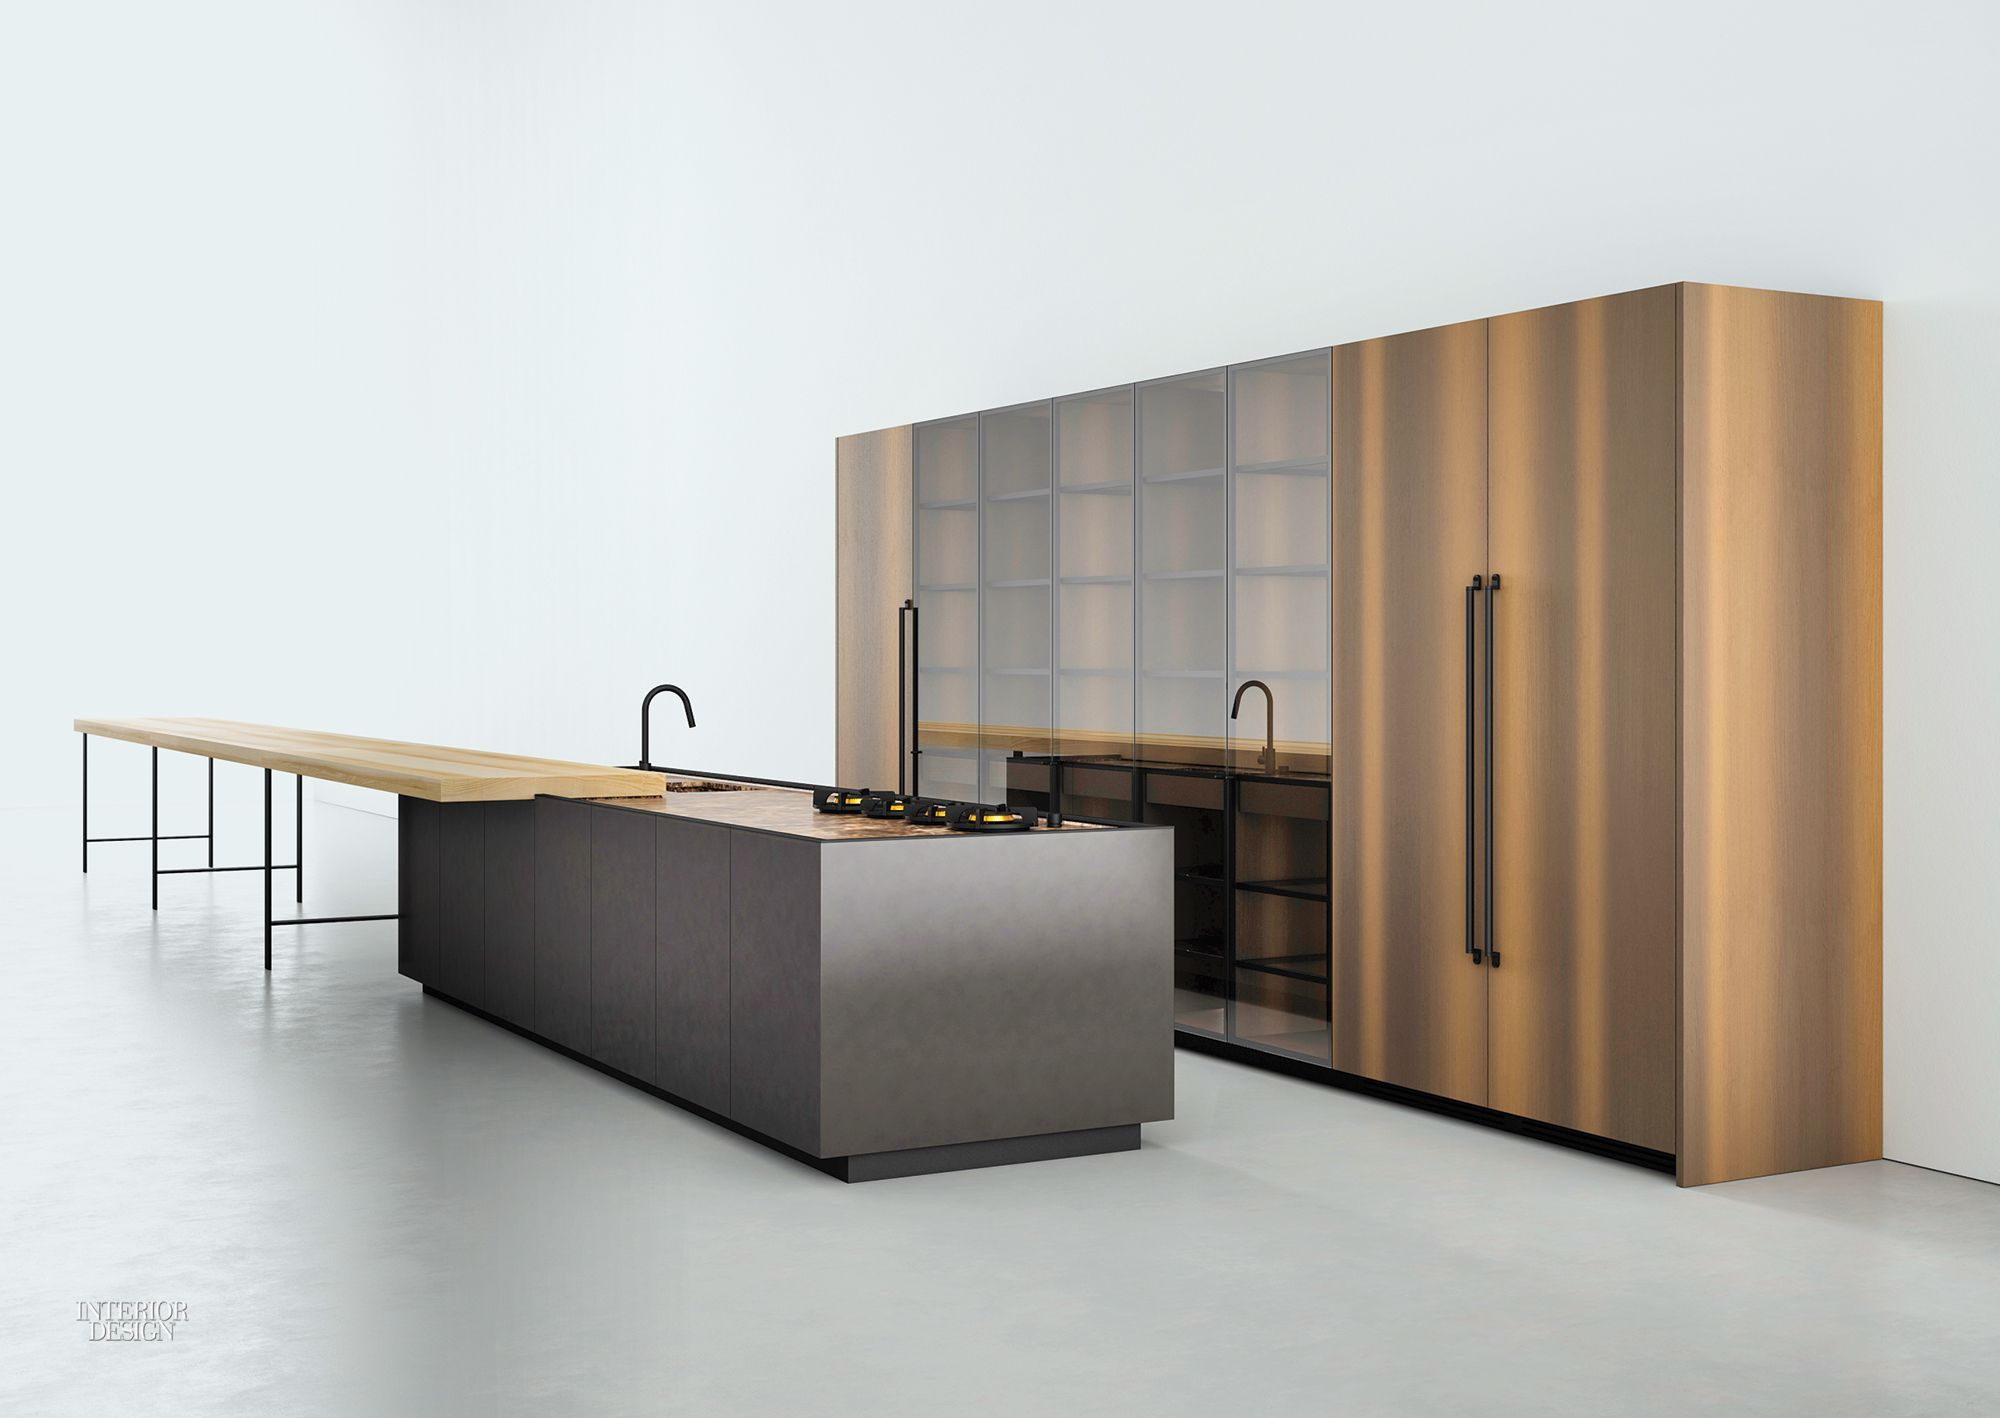 Norbert Wangen's Luxurious K21 Kitchen for Boffi Keuken